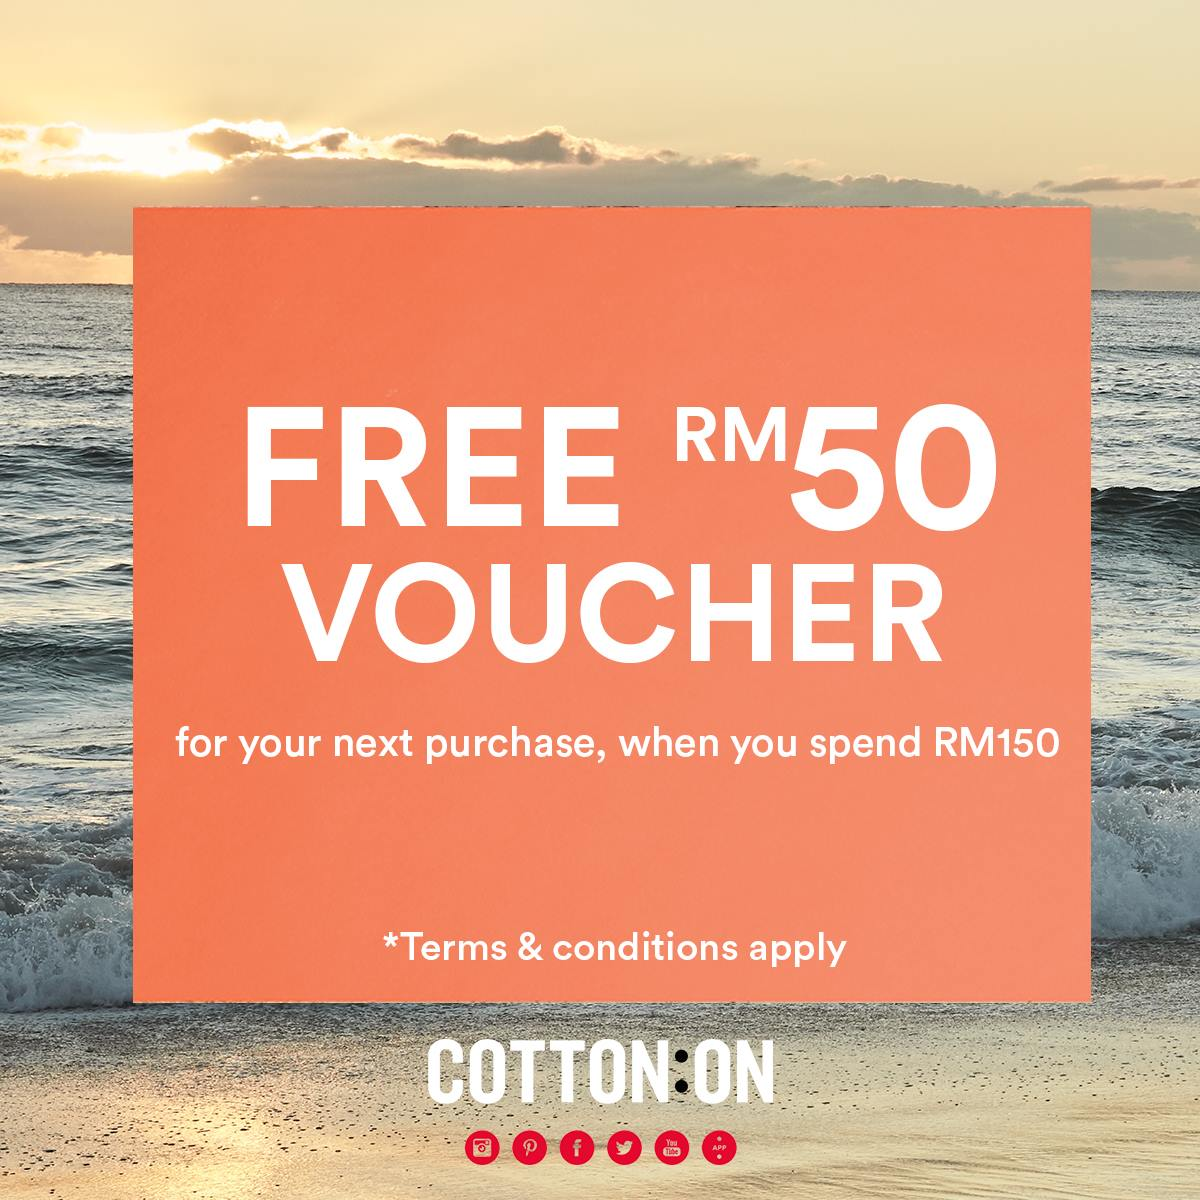 Cotton On Spend RM150 Get FREE RM50 Voucher for Next Purchase Until 10 May  2017